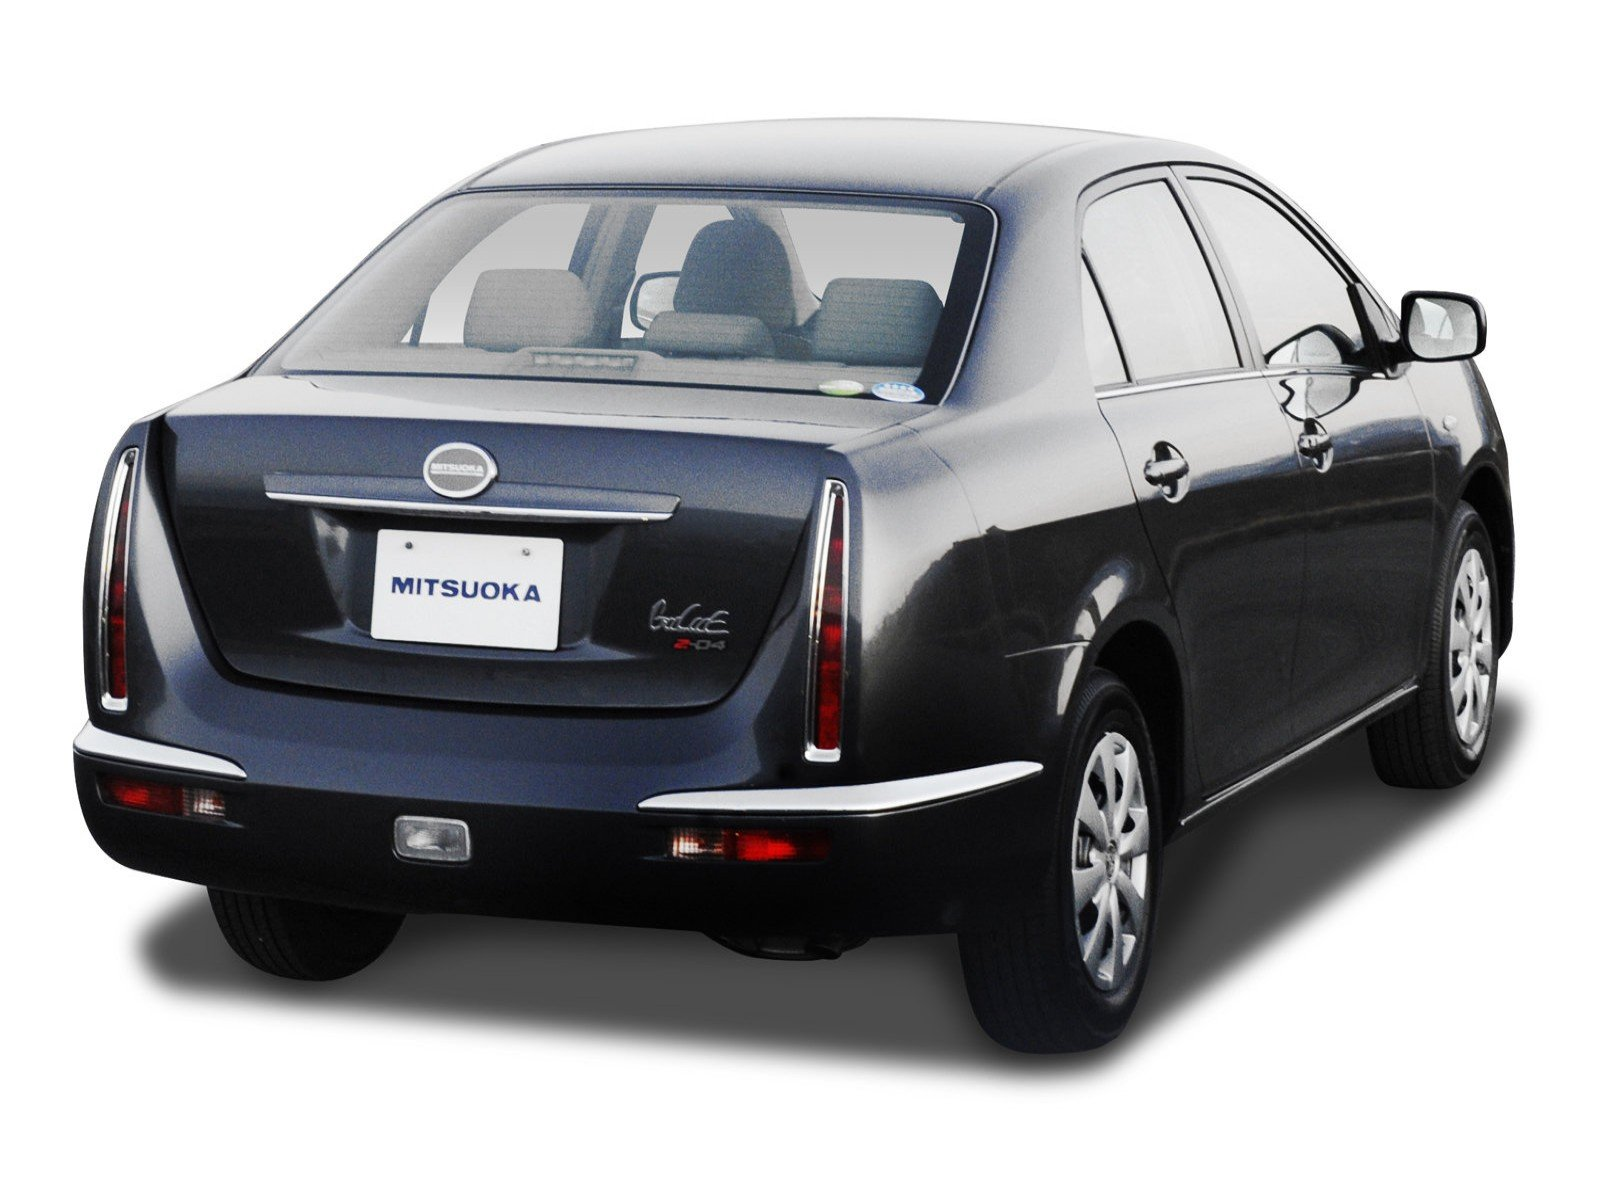 Latest Car Pictures Mitsuoka Galue 204 2008 Free Download